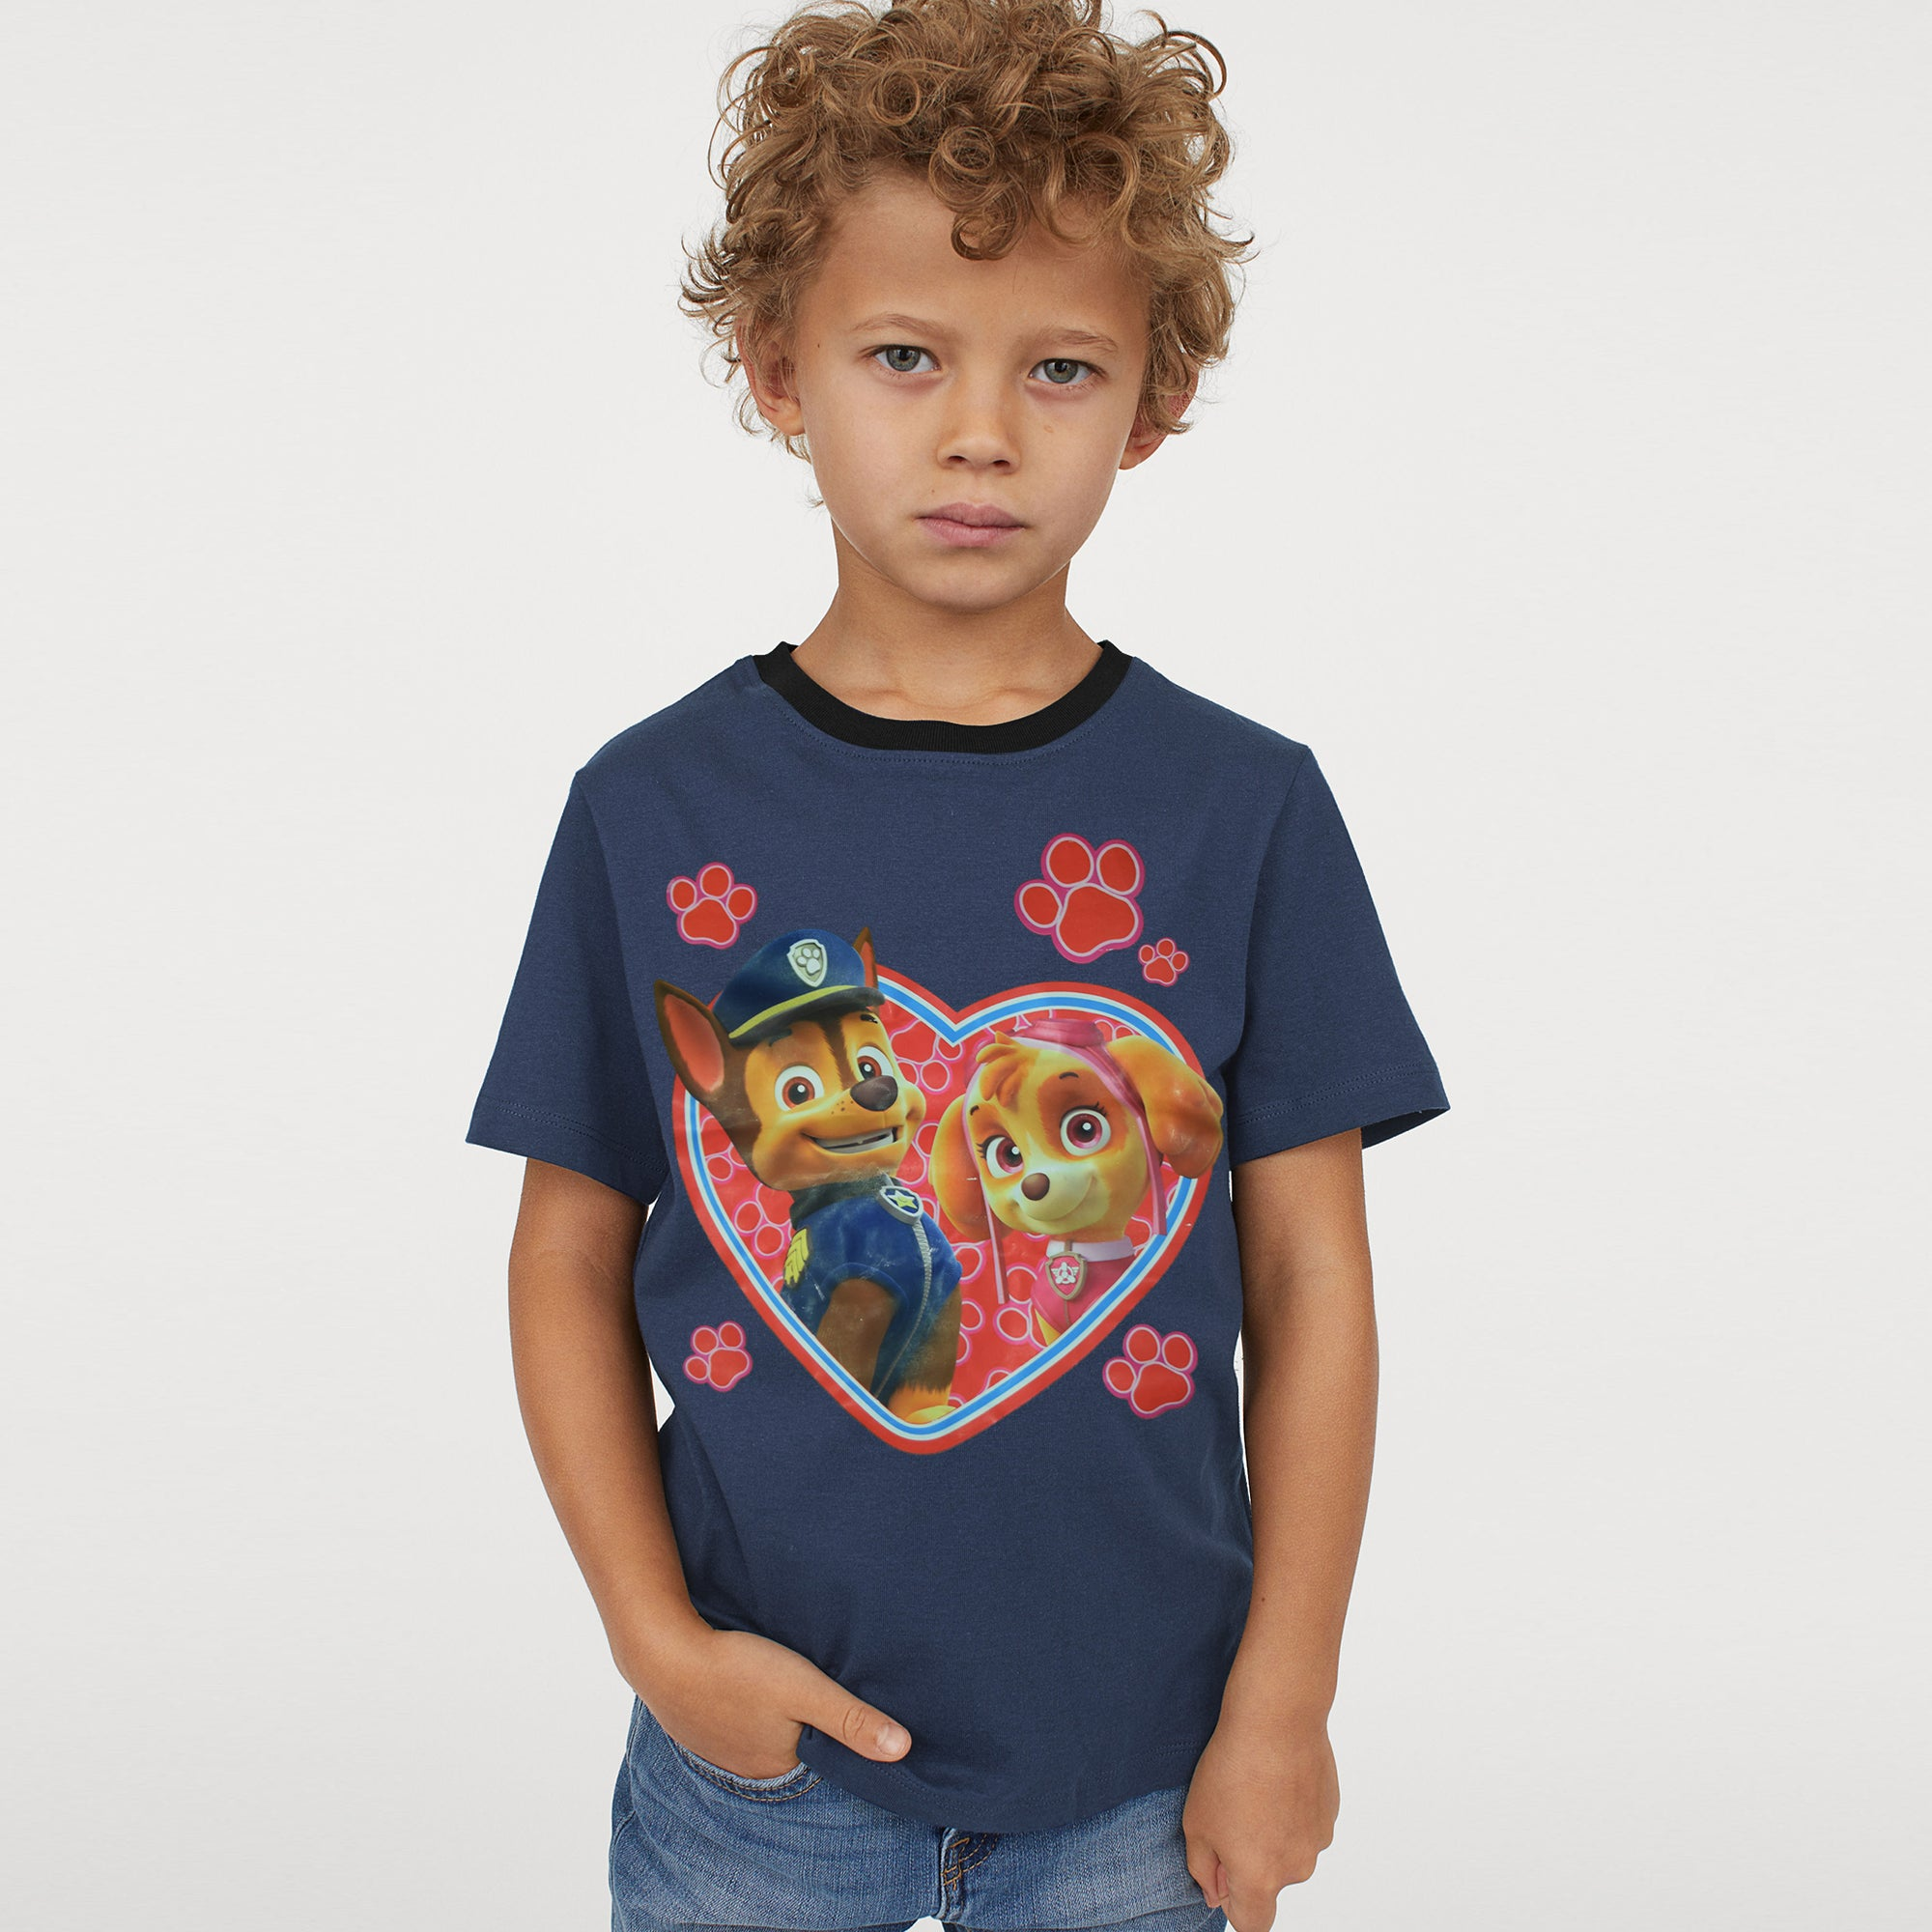 H&M Crew Neck Single Jersey T Shirt For Kids-BE8304